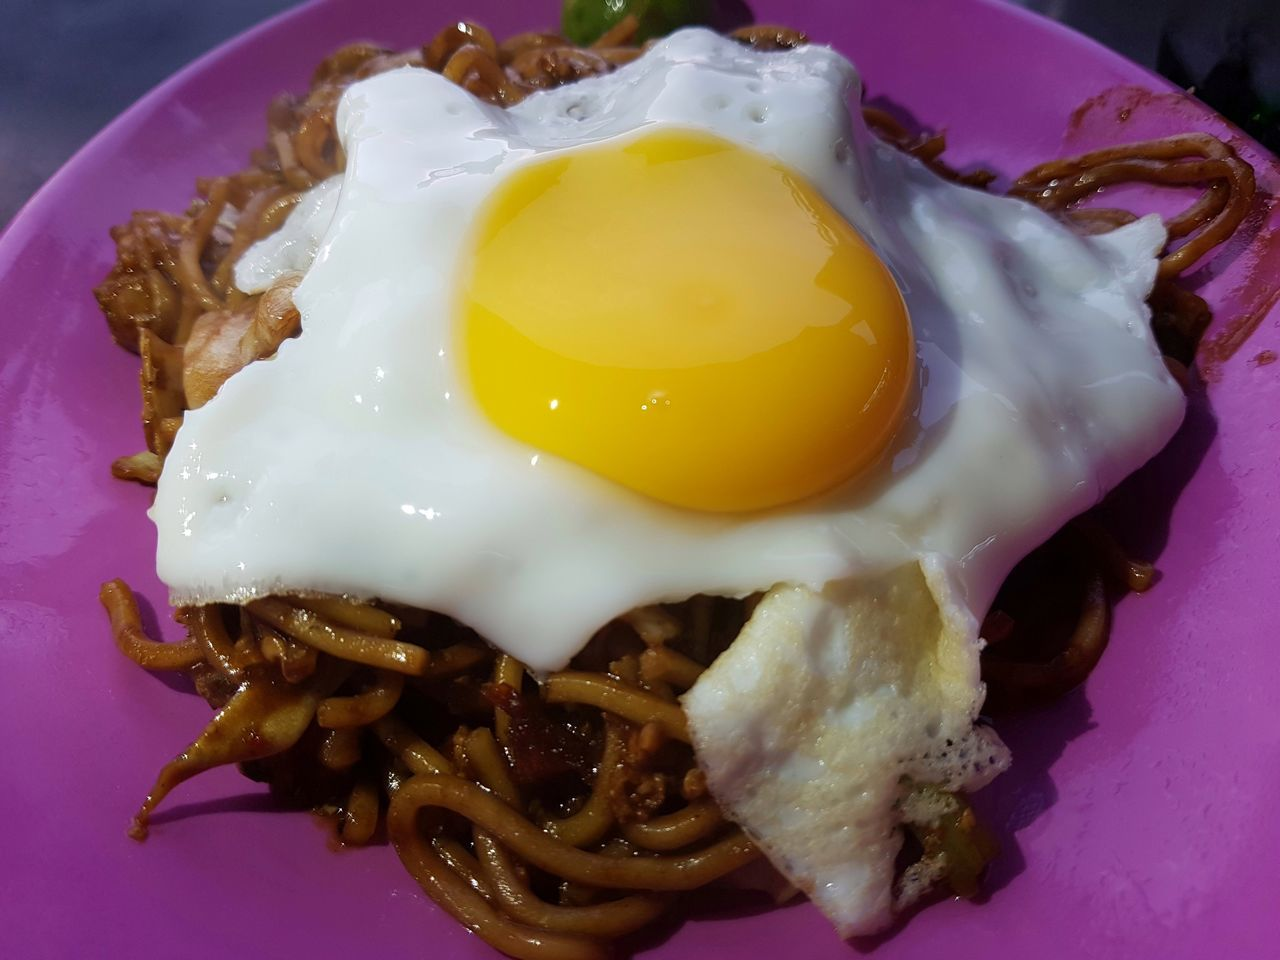 egg, food, food and drink, egg yolk, no people, freshness, close-up, plate, fried egg, indoors, yellow, healthy eating, ready-to-eat, day